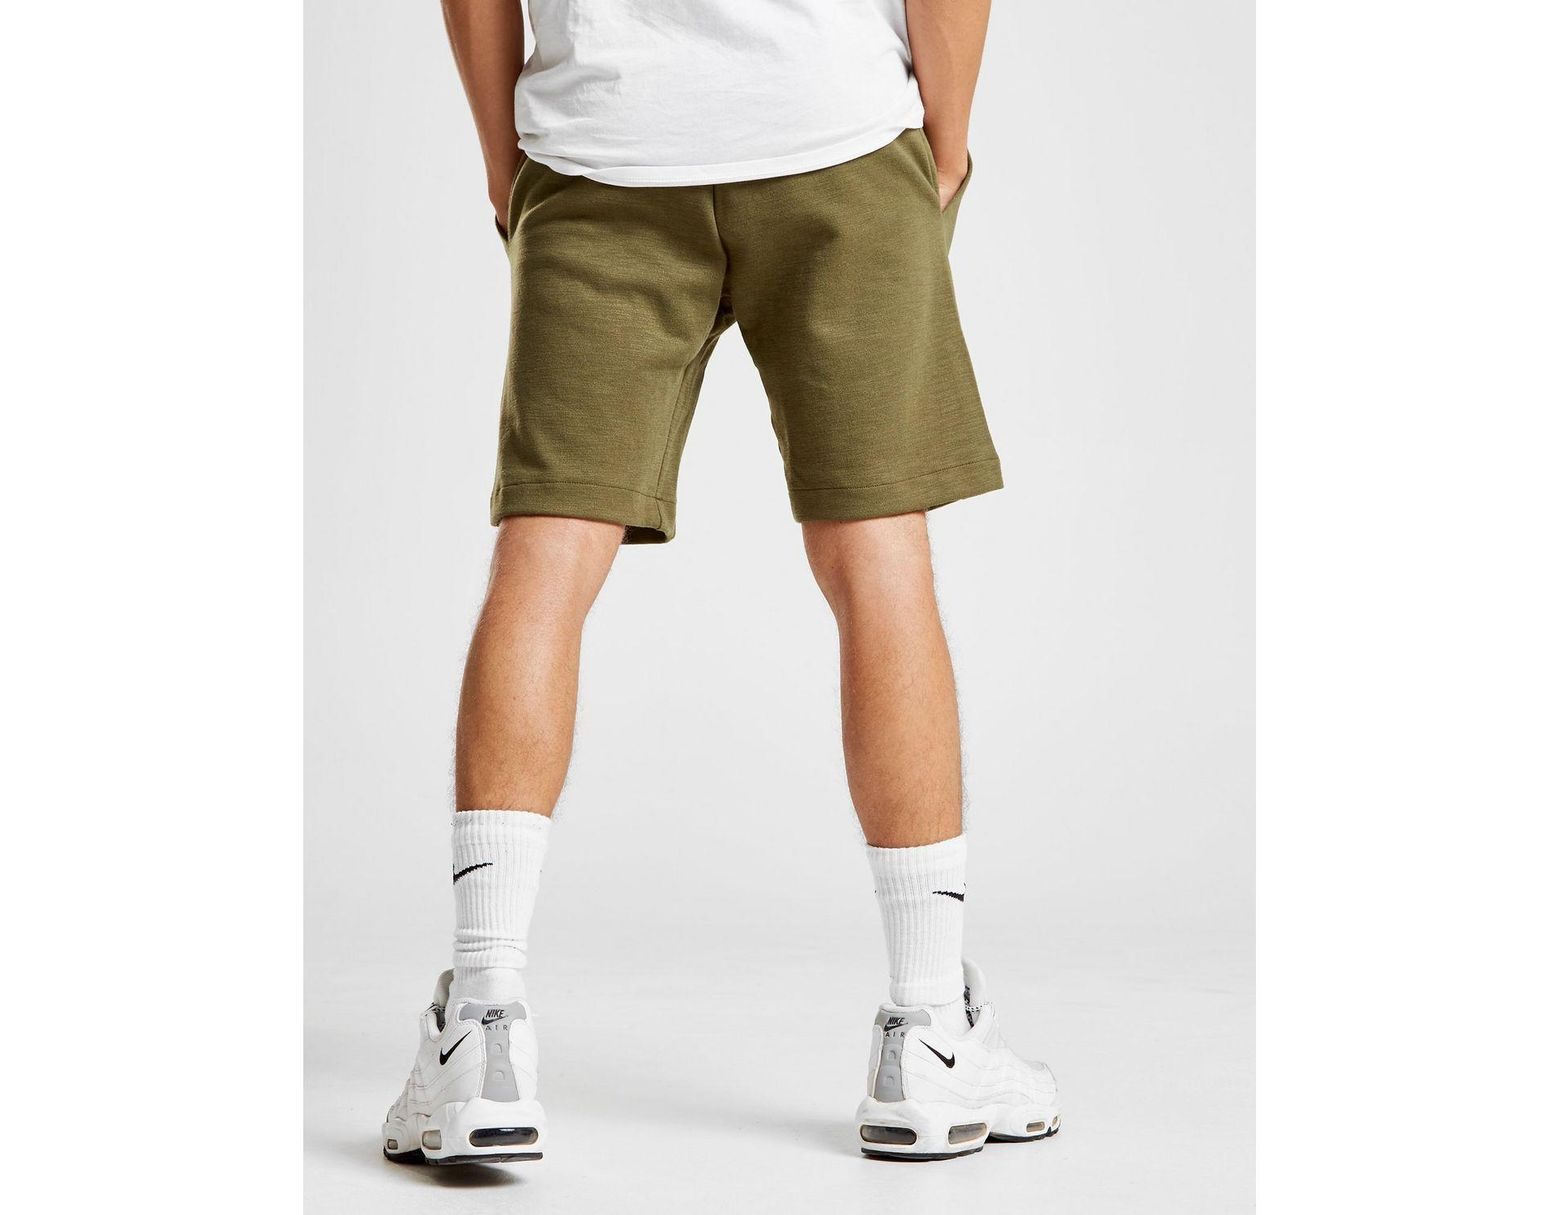 e0eb50979d7b Lyst - Nike Optic Shorts in Green for Men - Save 31%